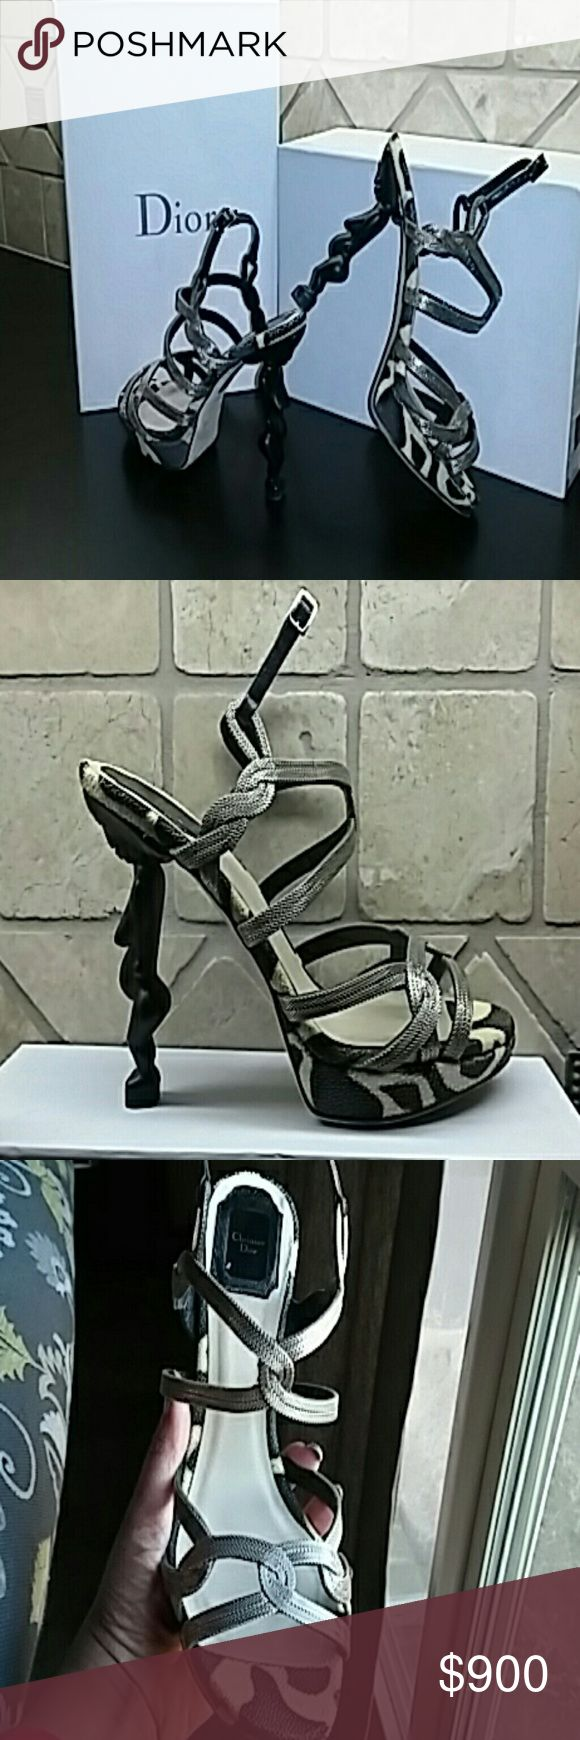 Christian Dior Couture Heels/Sandals Fertility goddess sandal in black and cream animal print stingray. These were designed by John Galliano for House of Dior. This runway item will definitely stop the show. Christian Dior Shoes Heels